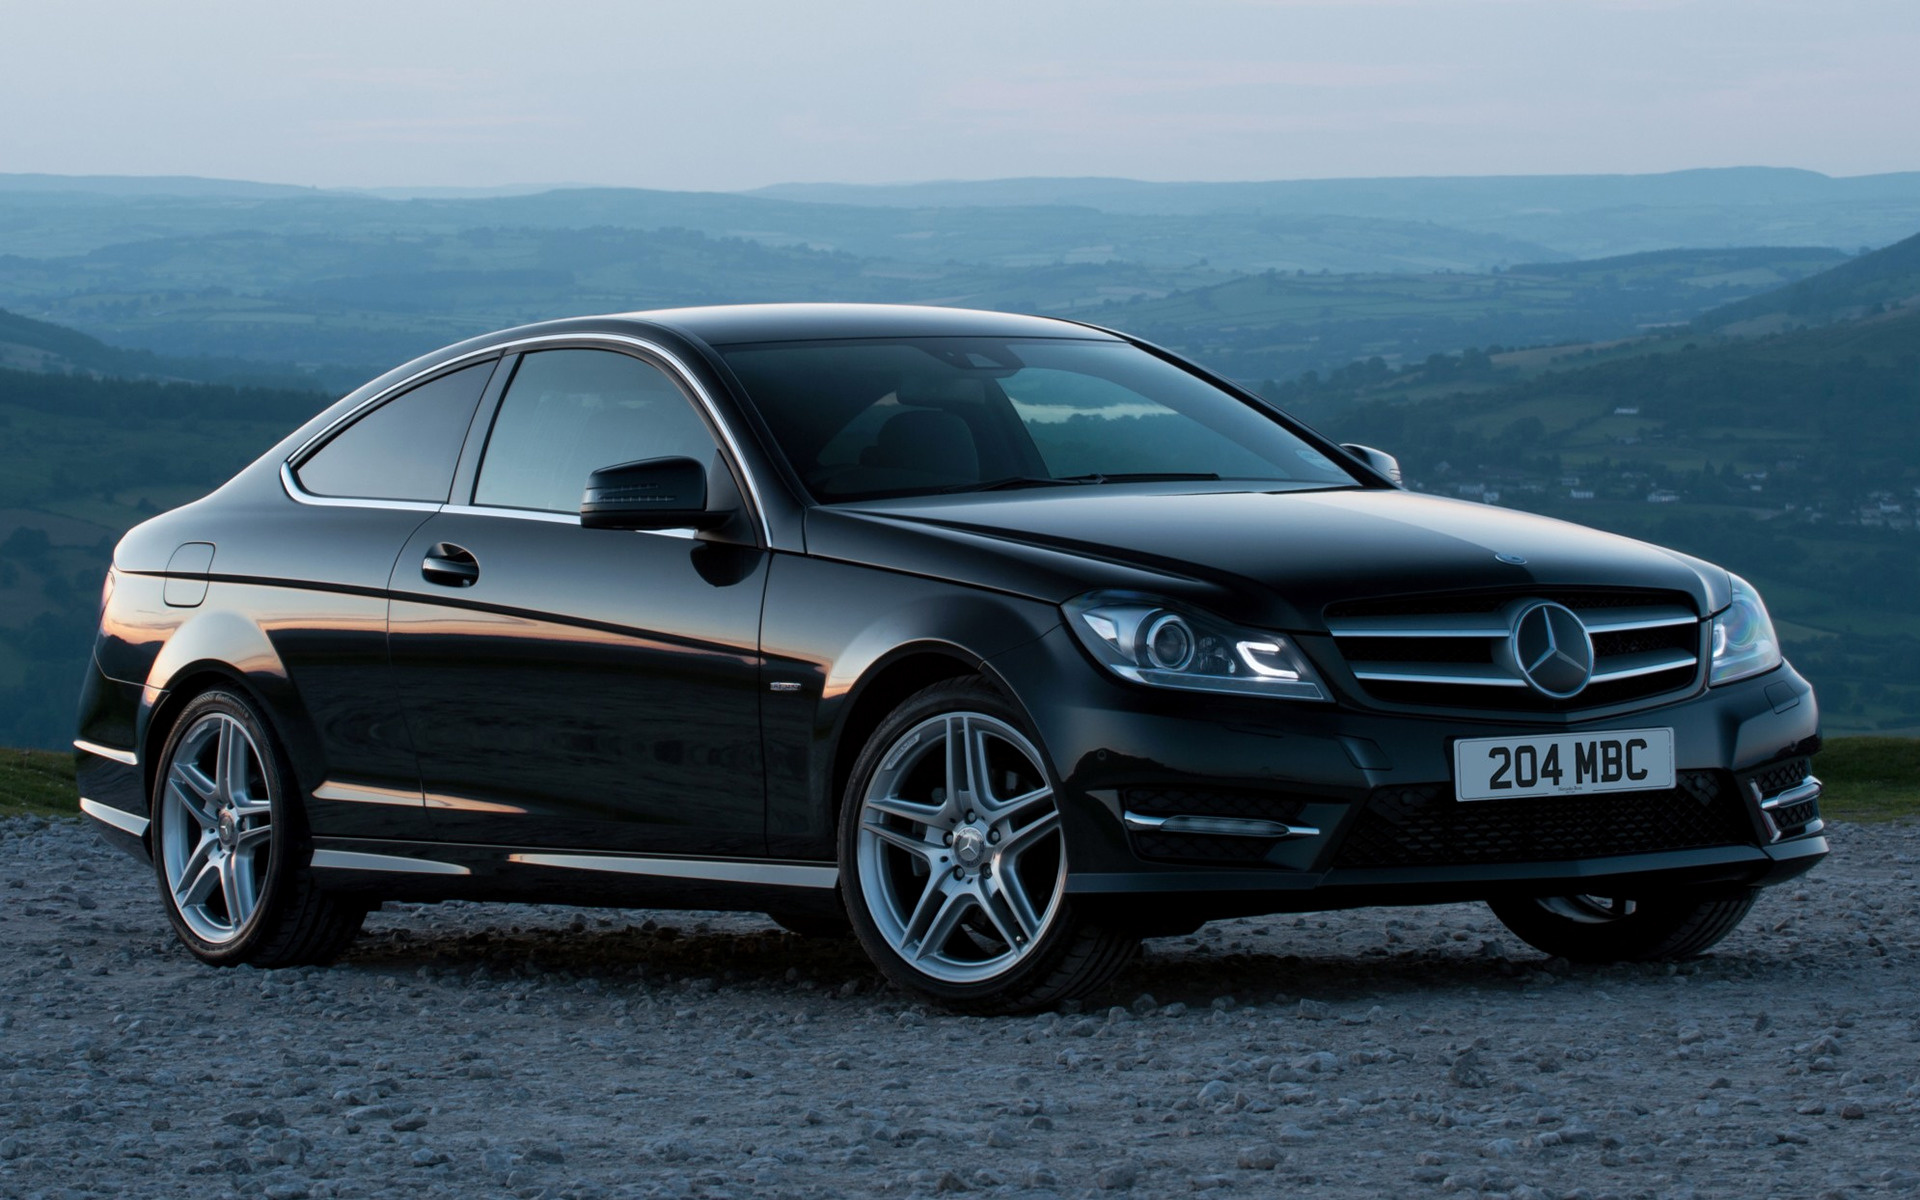 2011 Mercedes Benz C Class Coupe Amg Styling Uk